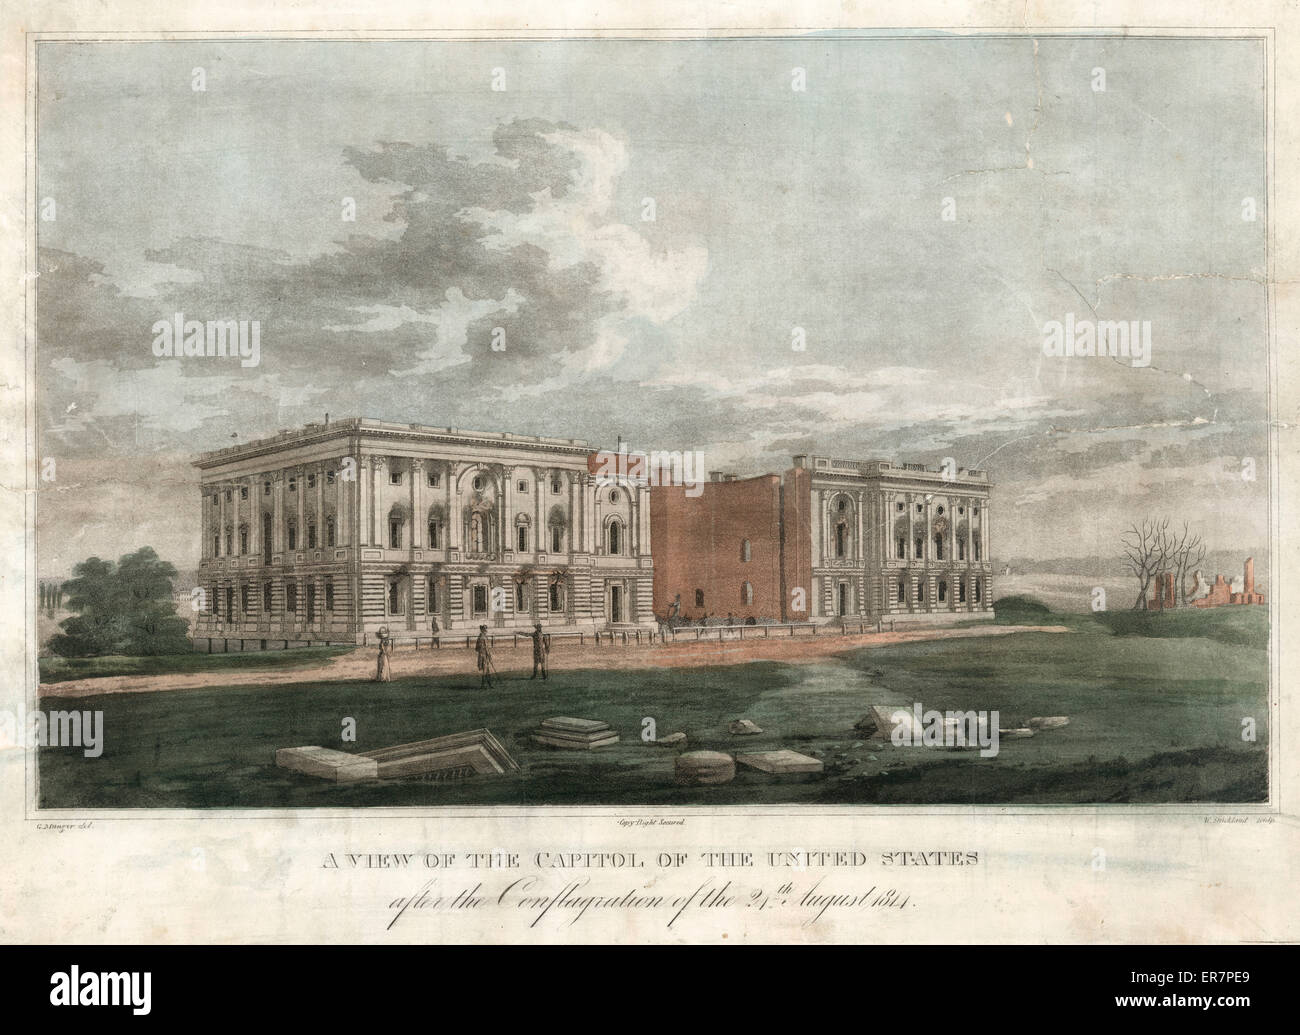 A view of the Capitol after the conflagration of the 24th August 1814. Print shows a view from southeast of fire - Stock Image